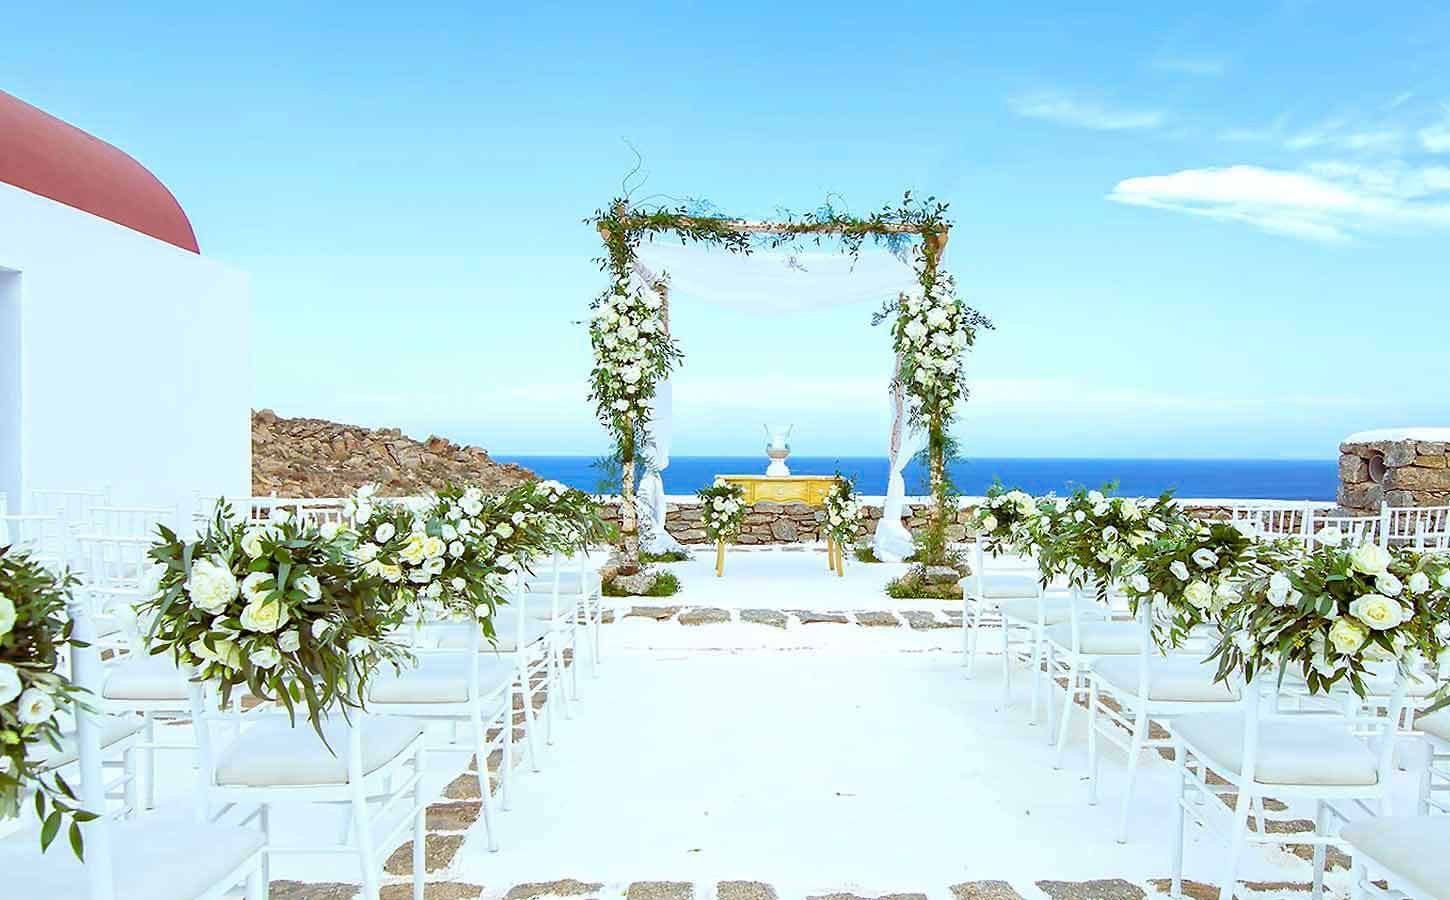 mYKONOS-WEDDING-CEREMONY-in-a-private-chapel-diamond-events-wedding-planner-wordwide